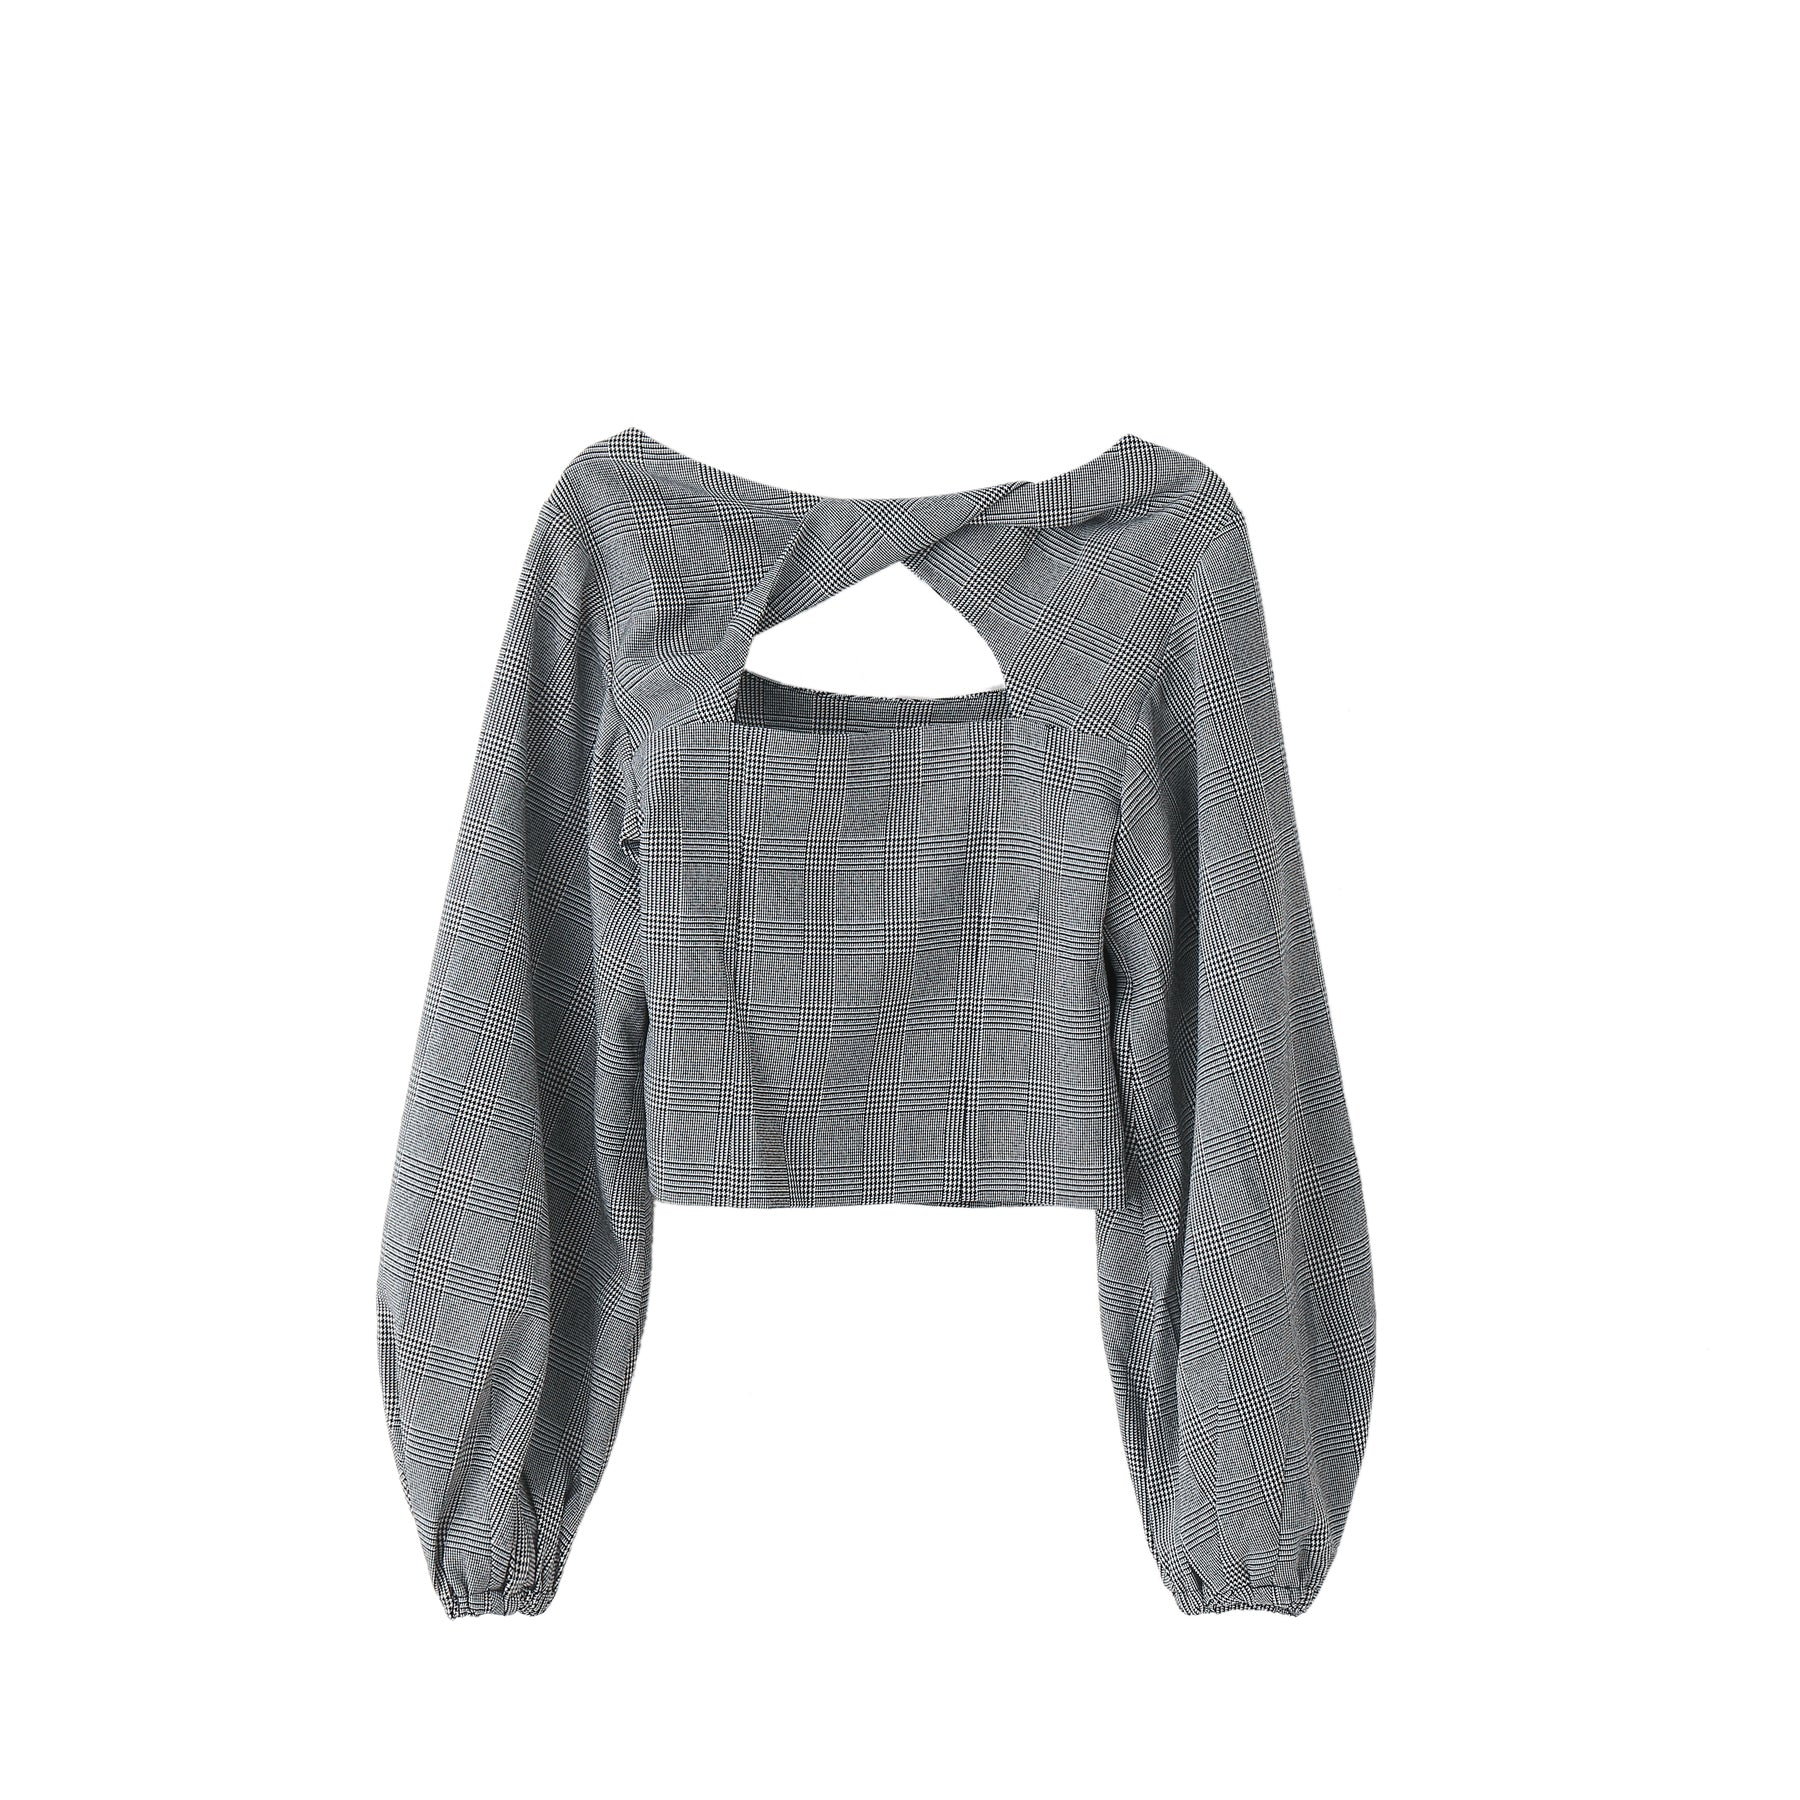 Mona Square Neck Top